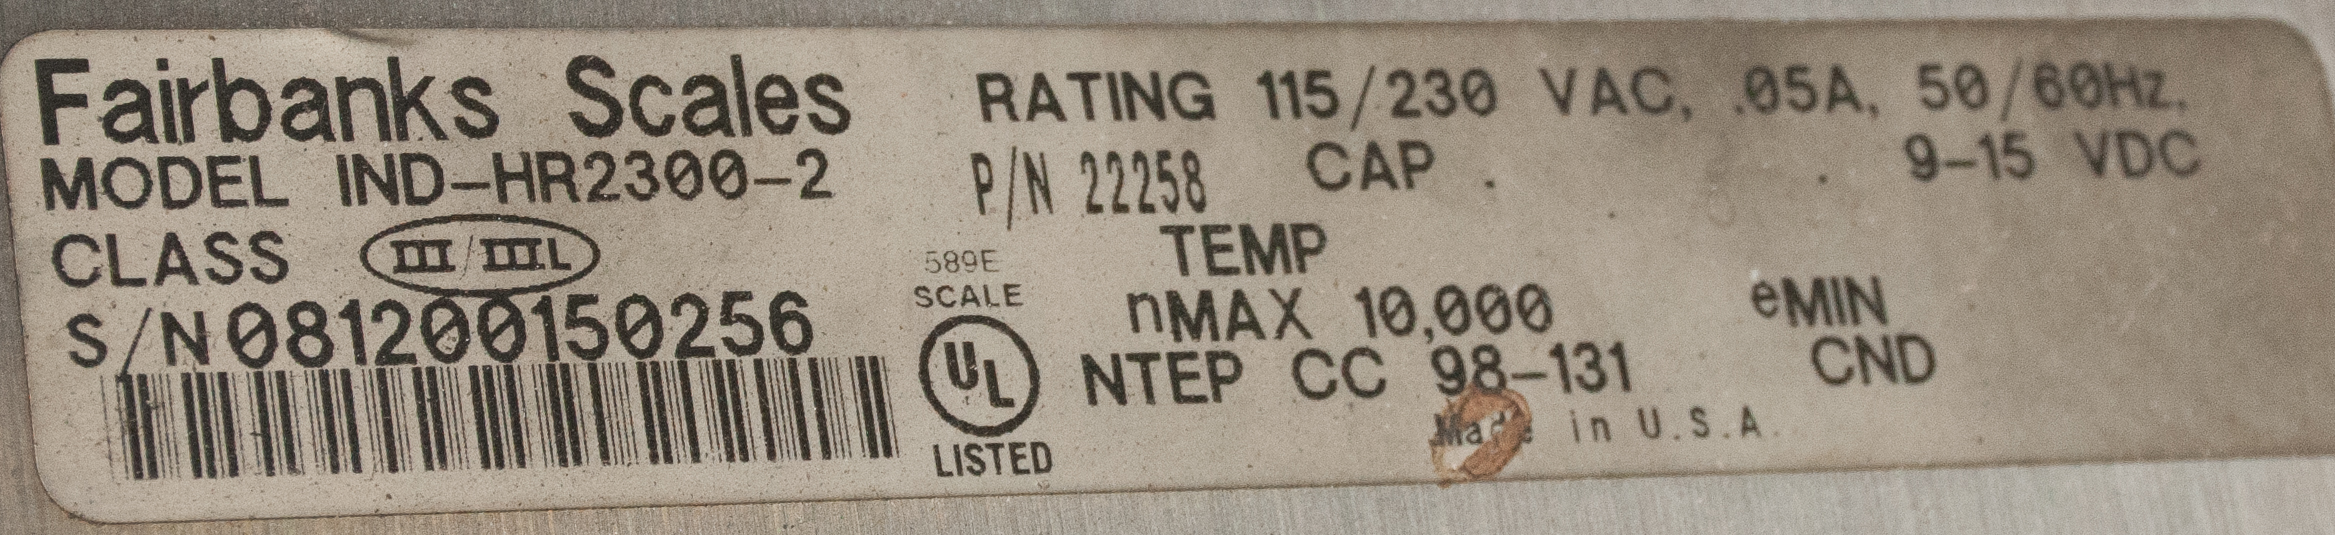 """Scale Table 82 1/2"""" X 107 1/2"""" w/ Fairbanks Readout and Epson Printer, 10,000 lb. Cap. - Image 3 of 5"""